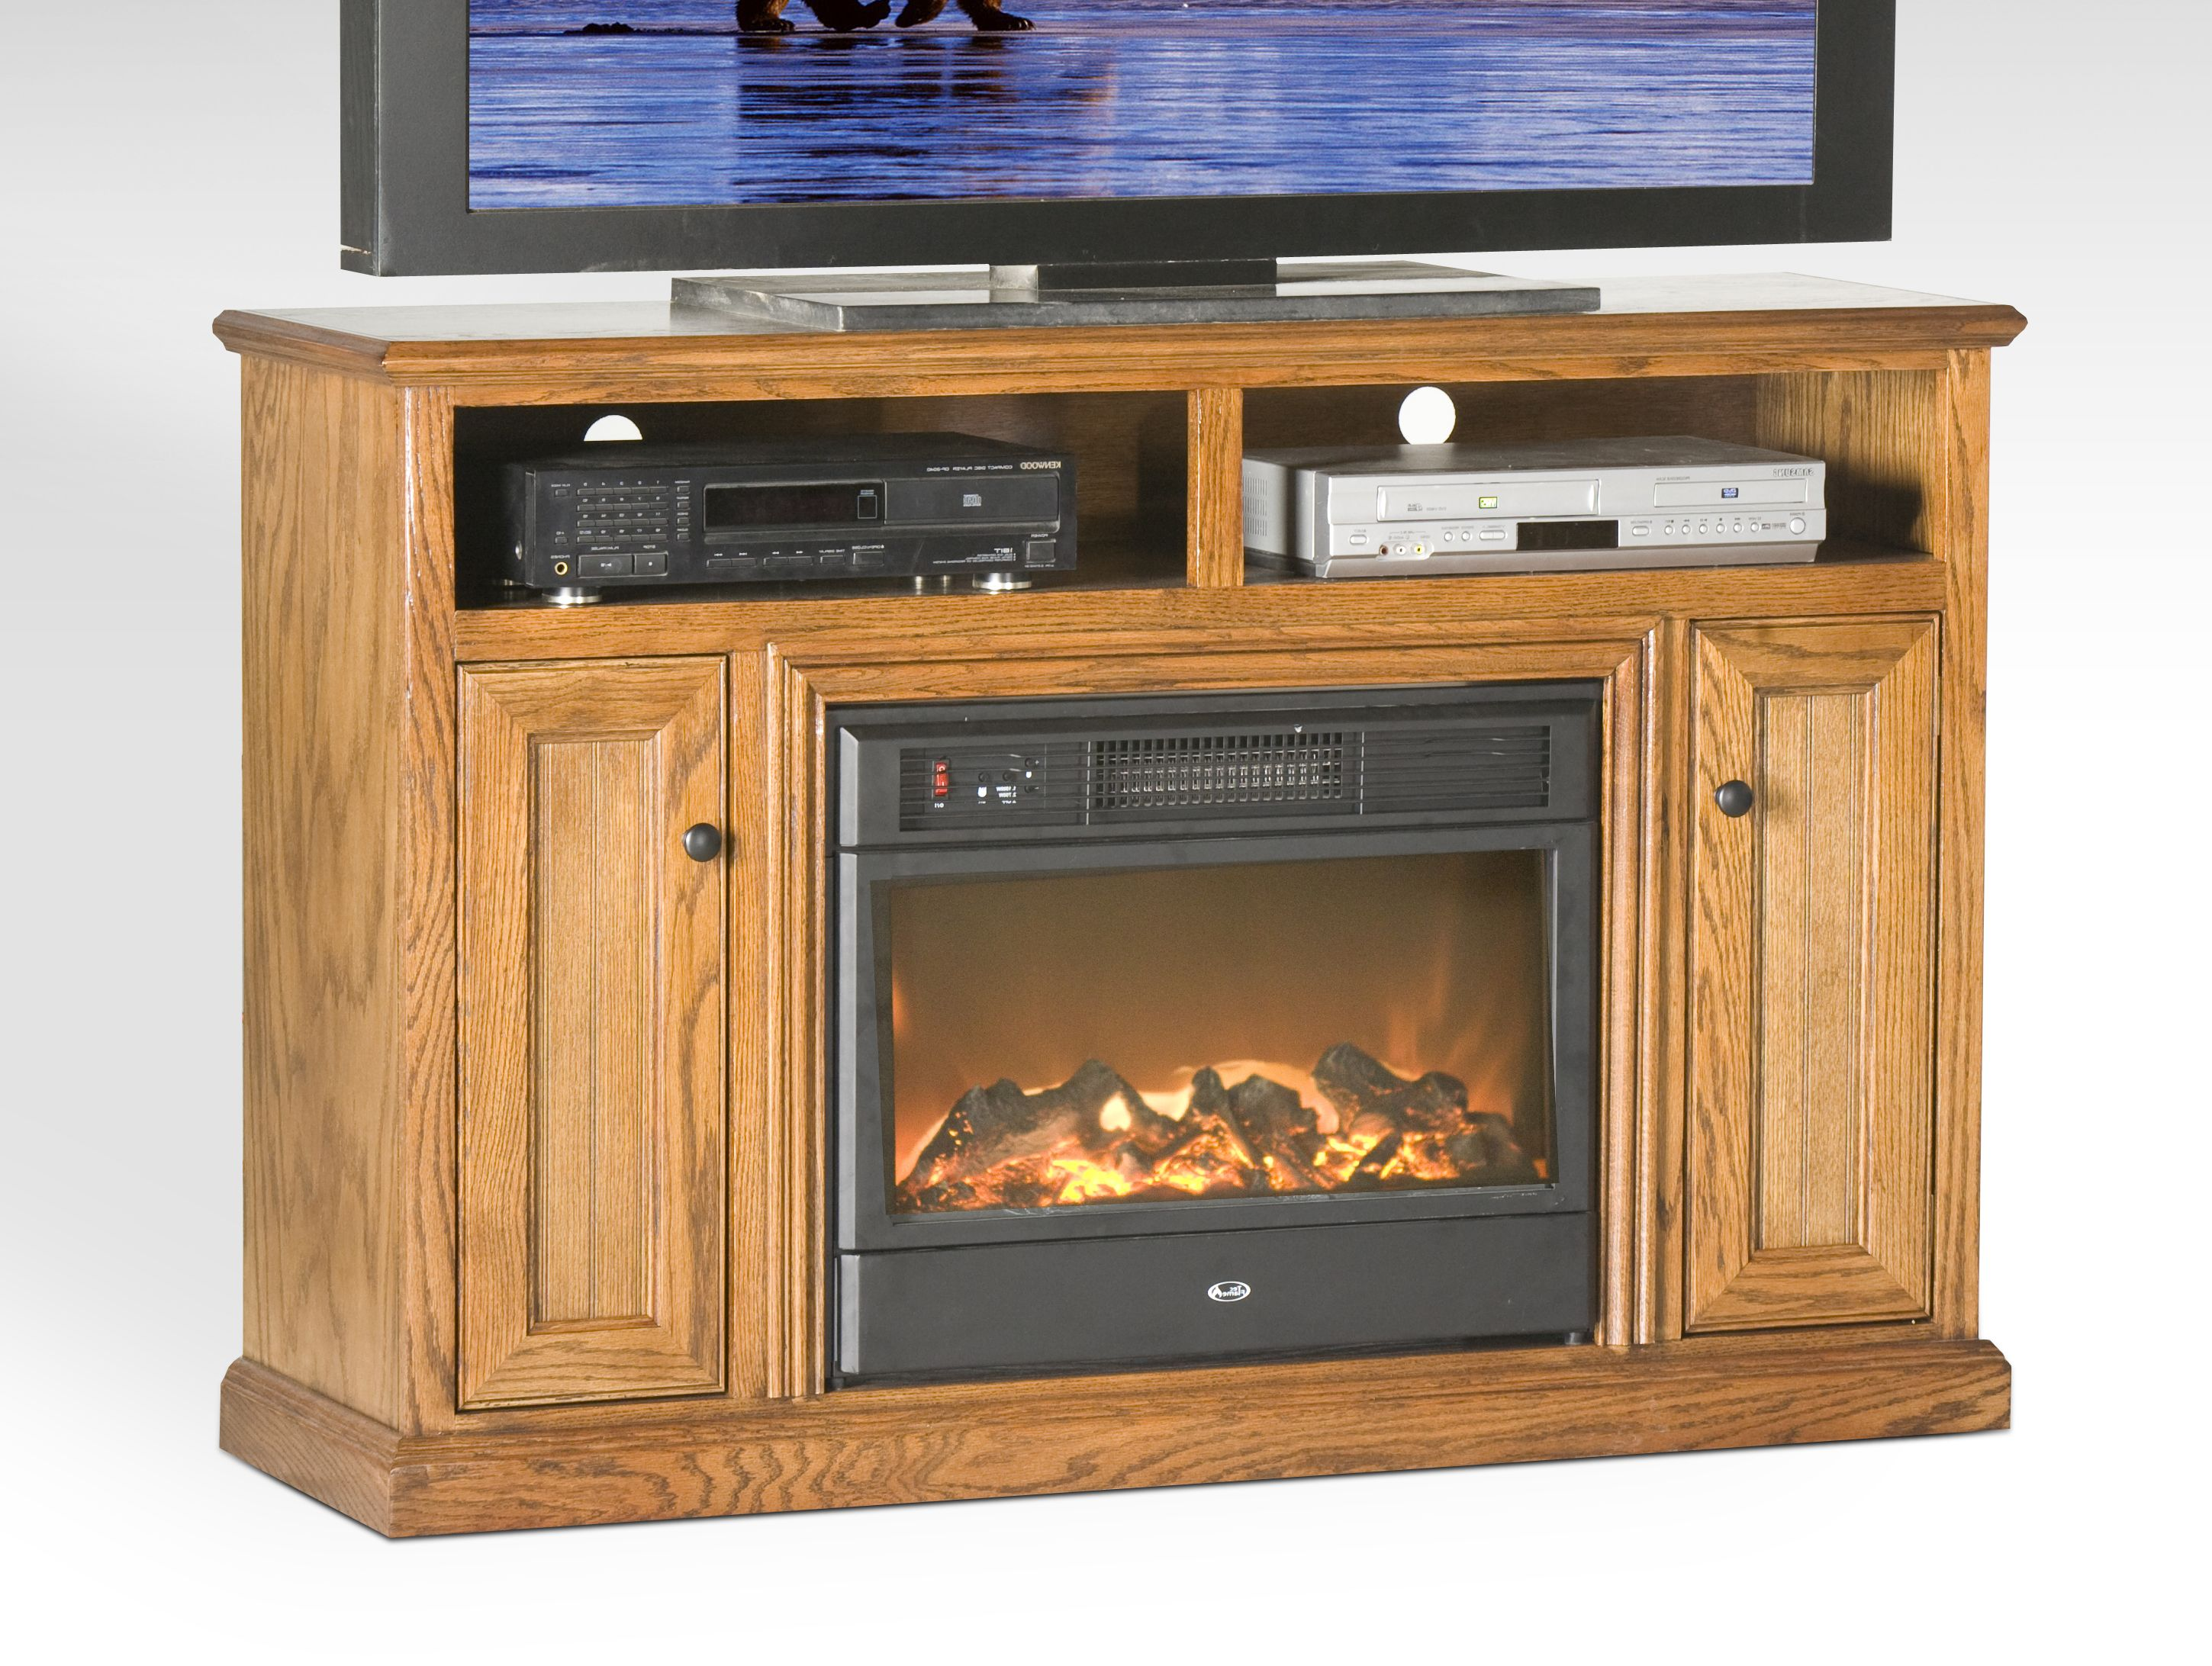 Costco Electric Fireplace Tv Stand 1 154 Eagle Furniture 53 25 Wide Electric Fireplace Tv St Fireplace Tv Stand Fireplace Entertainment Center Oak Fireplace